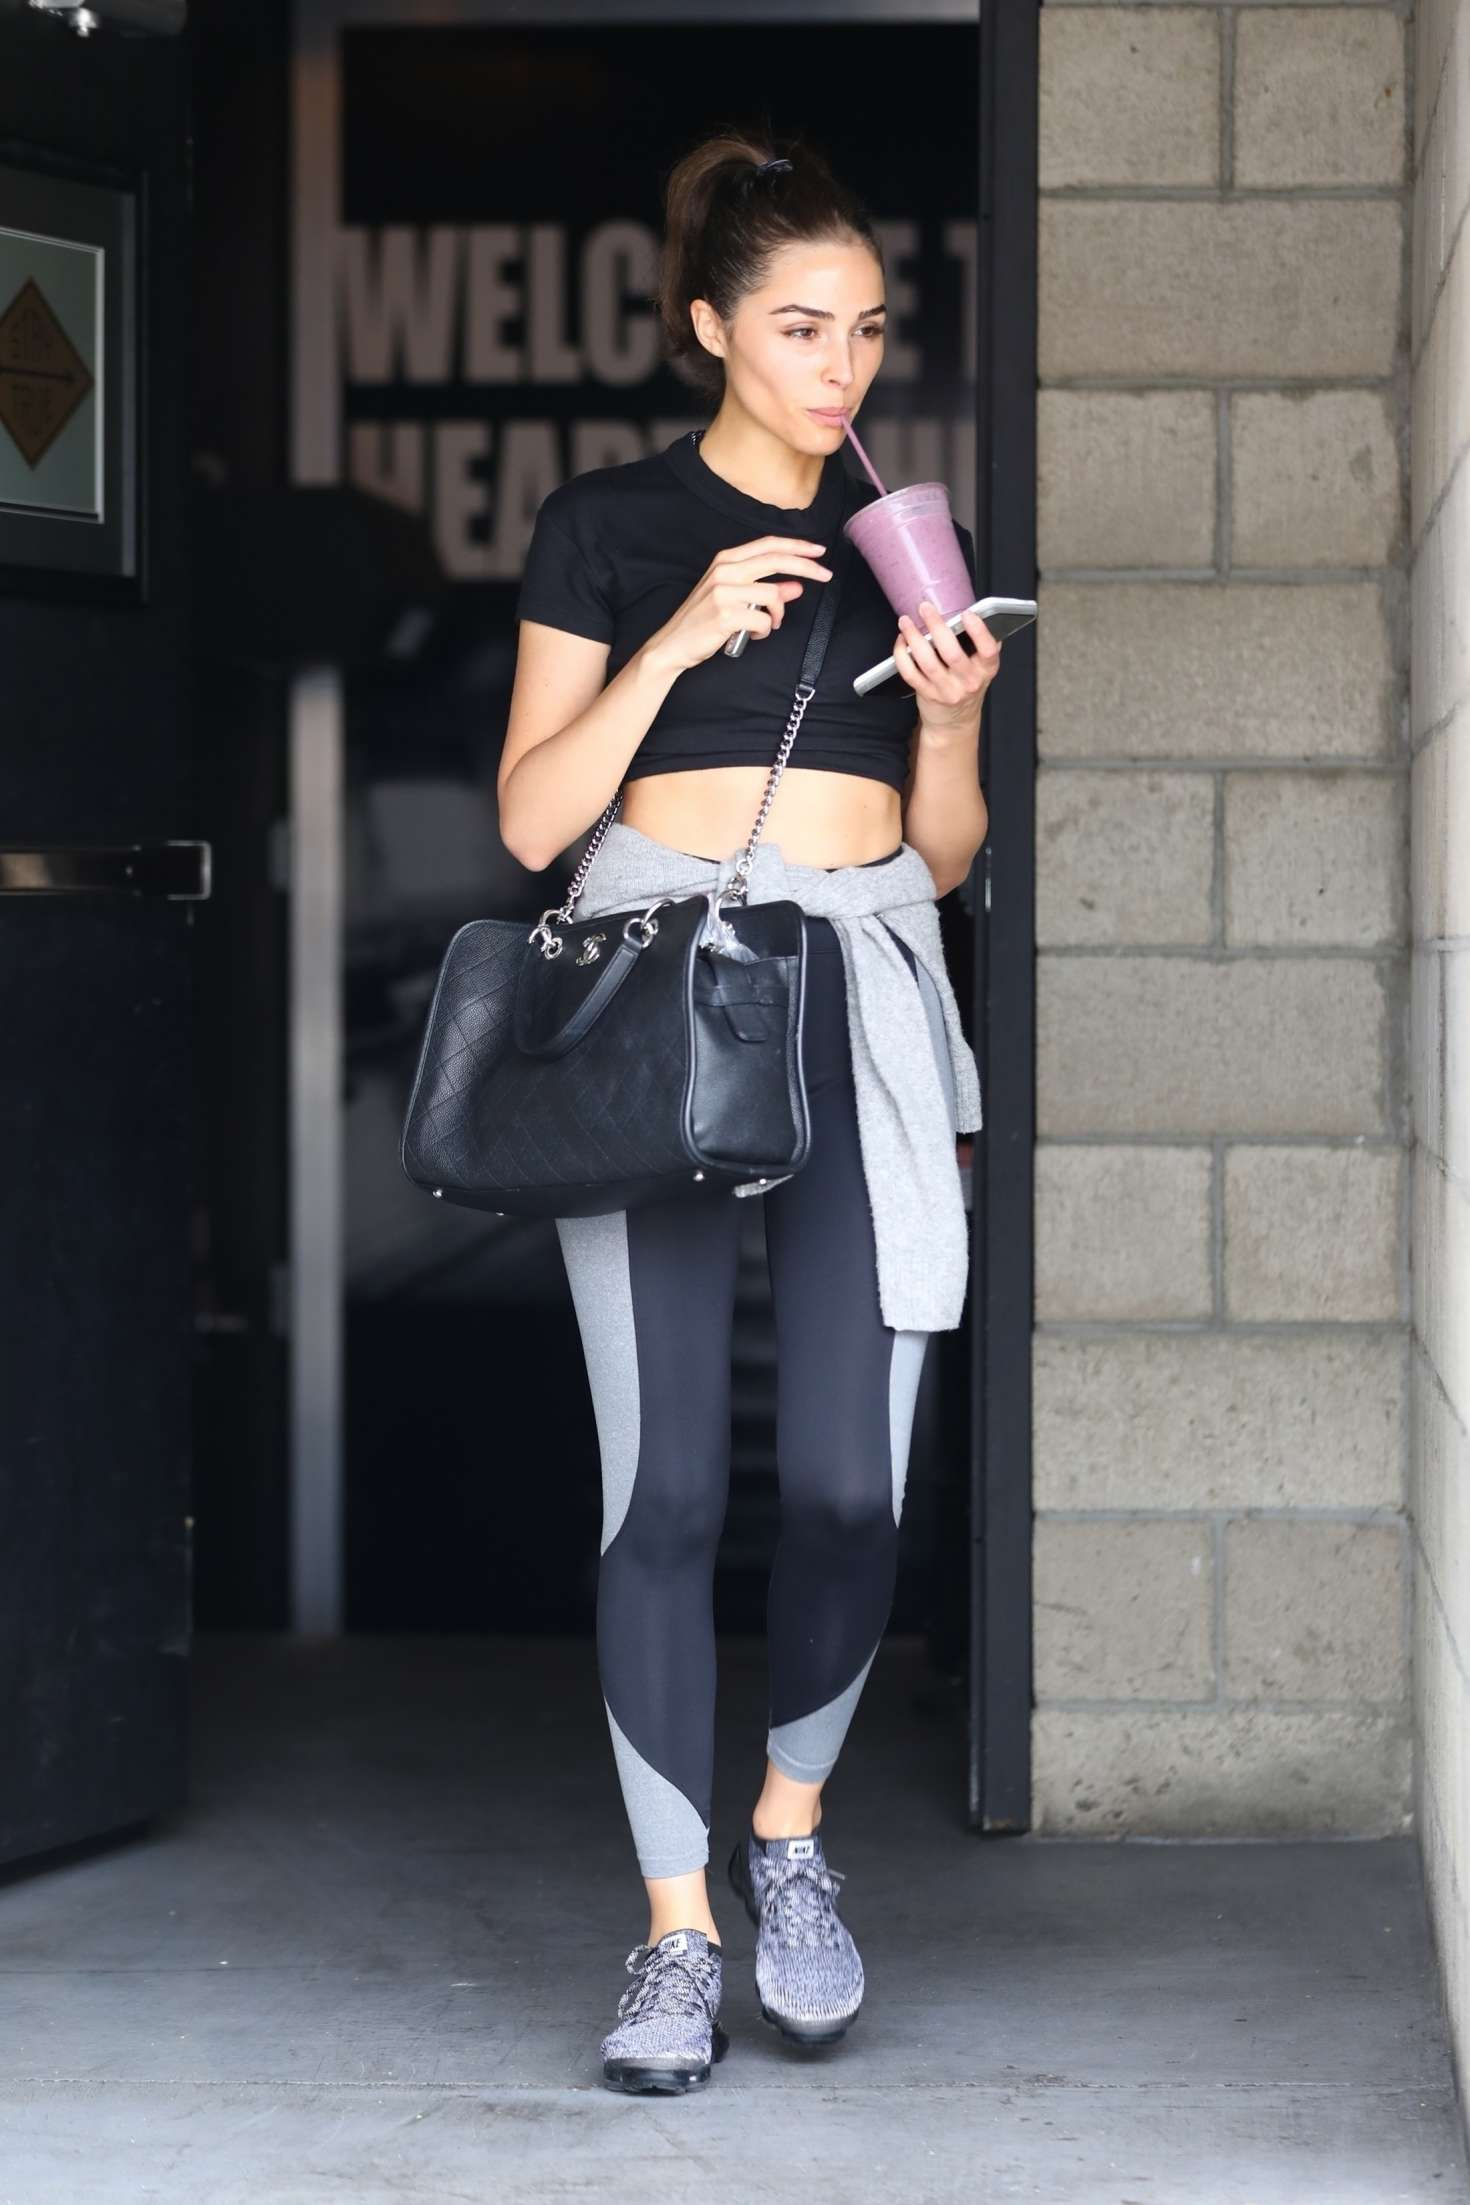 Olivia Culpo 2018 : Olivia Culpo in Tights: Leaves the gym -01